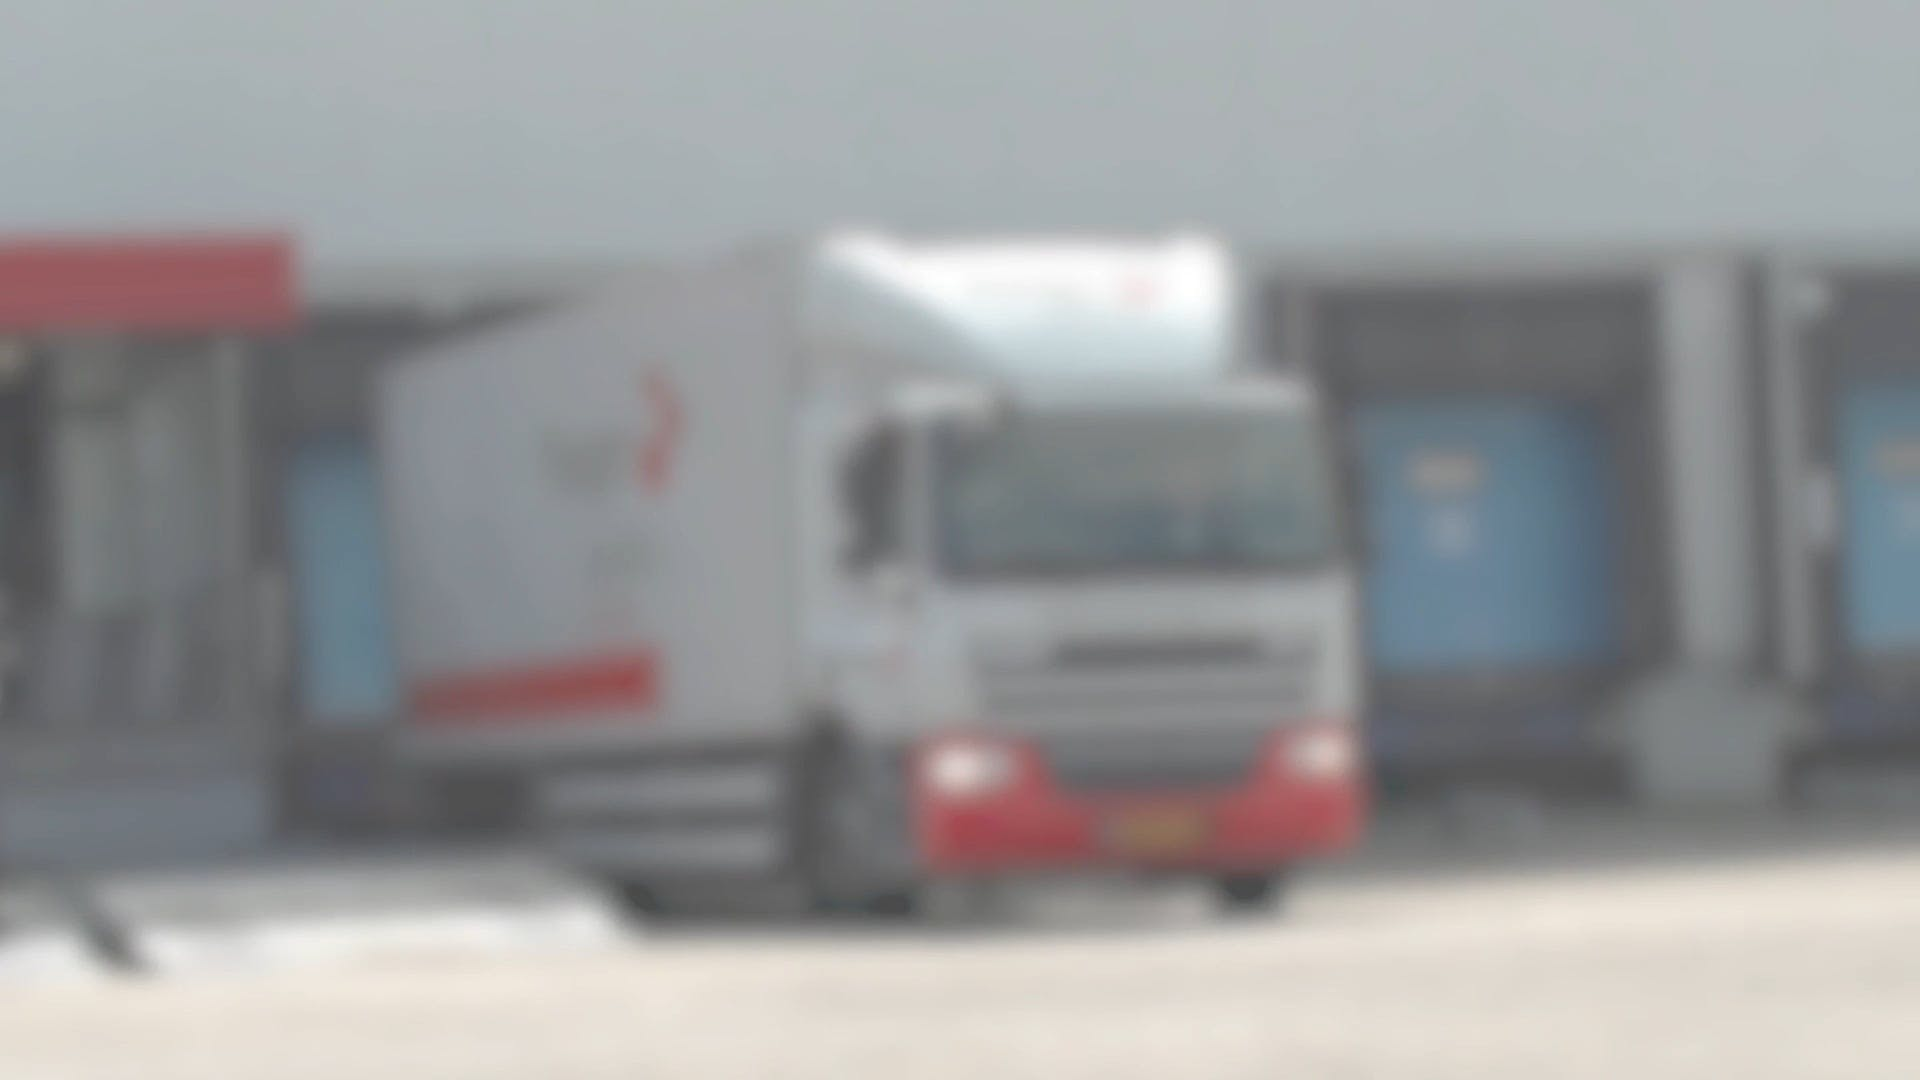 Blurry Video Of Truck